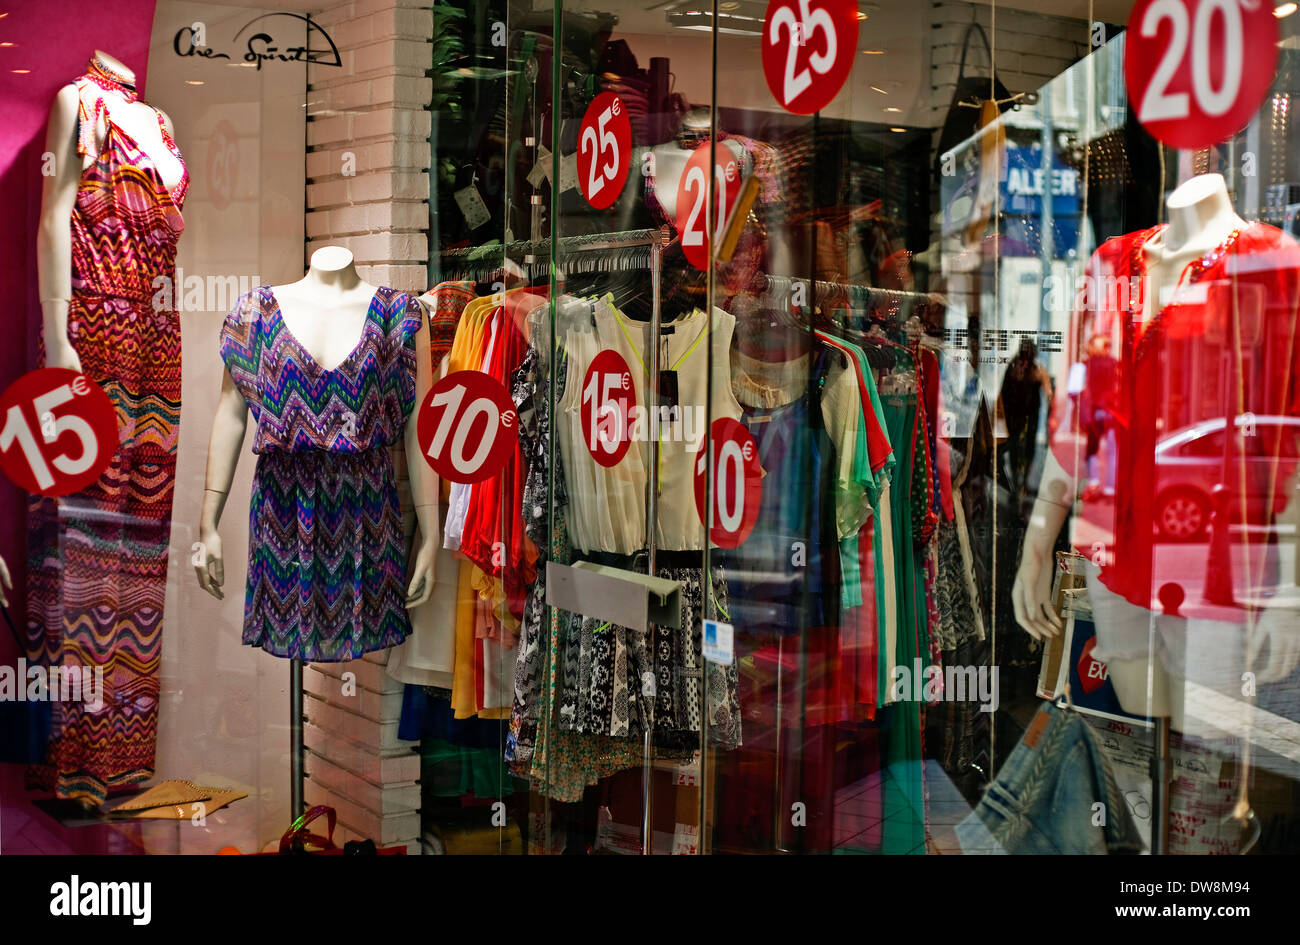 15,10, 20, 25 euro price discs in red on womens clothing shop window Marseilles France Stock Photo